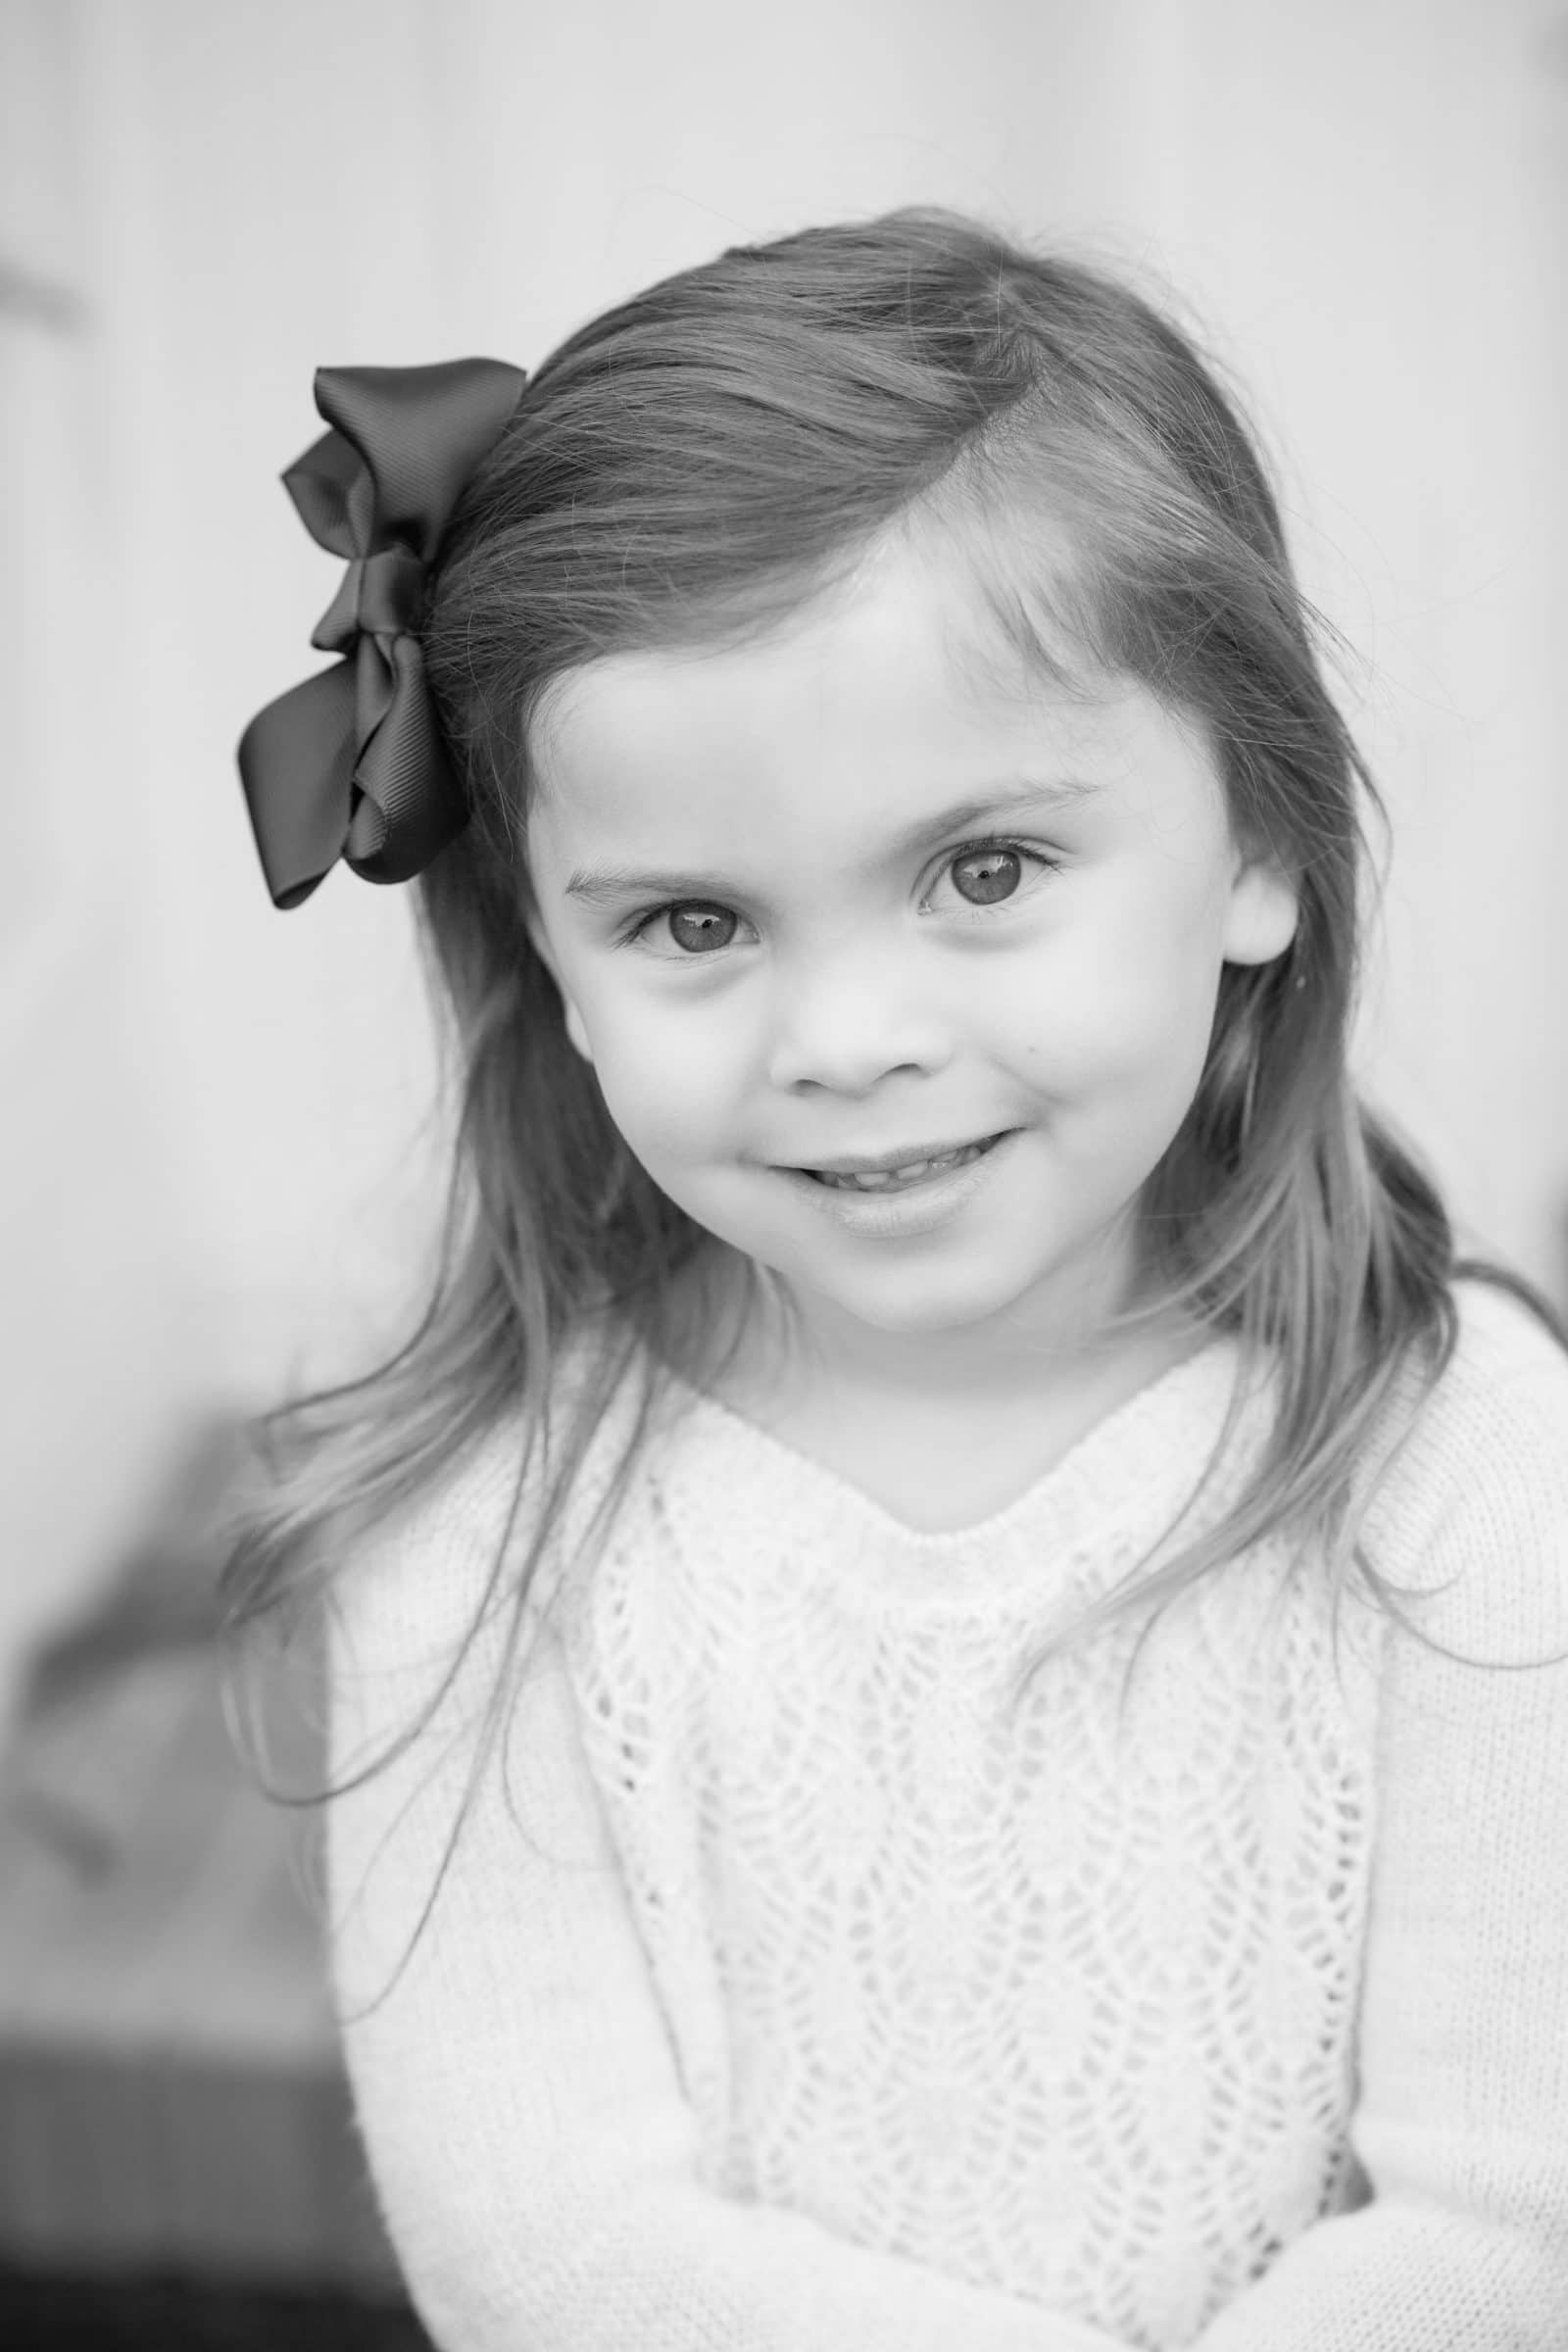 young girl with hair bow